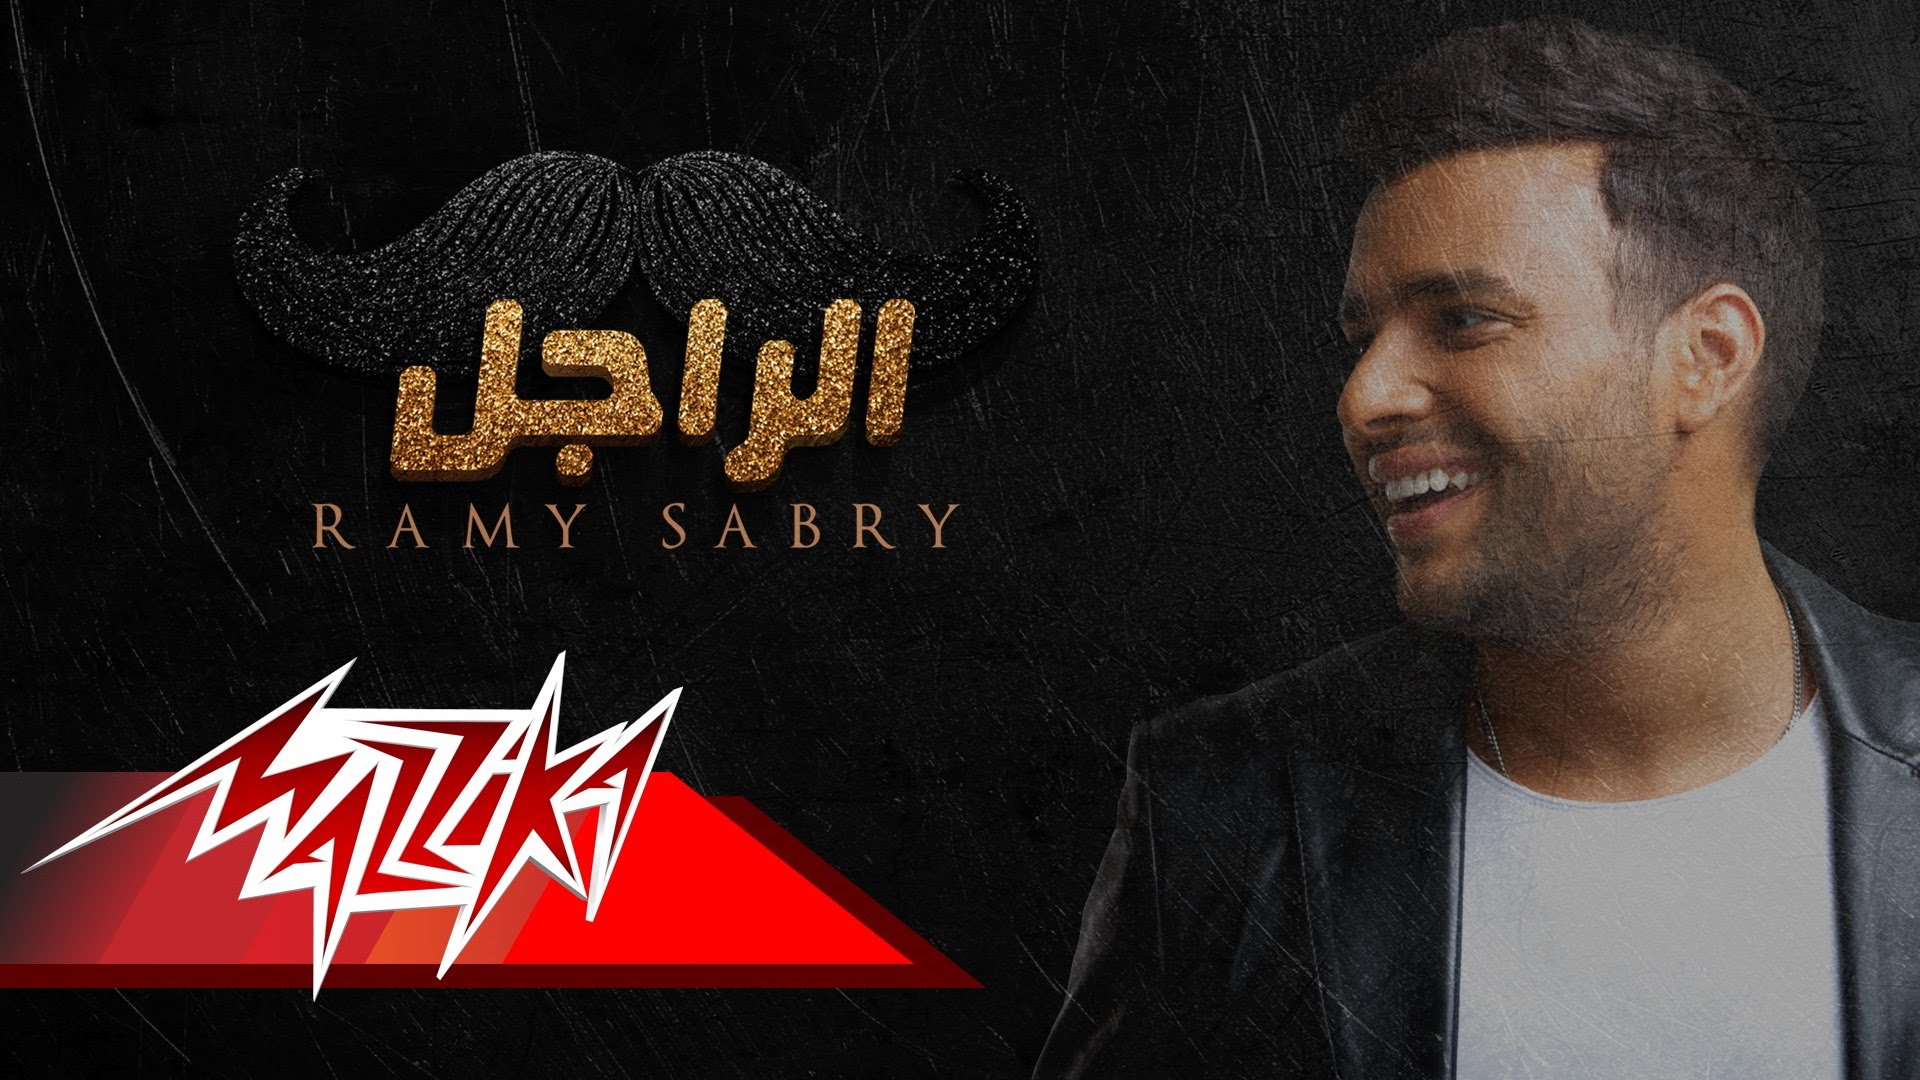 NEW SONG: Ramy Sabry – Al Ragel